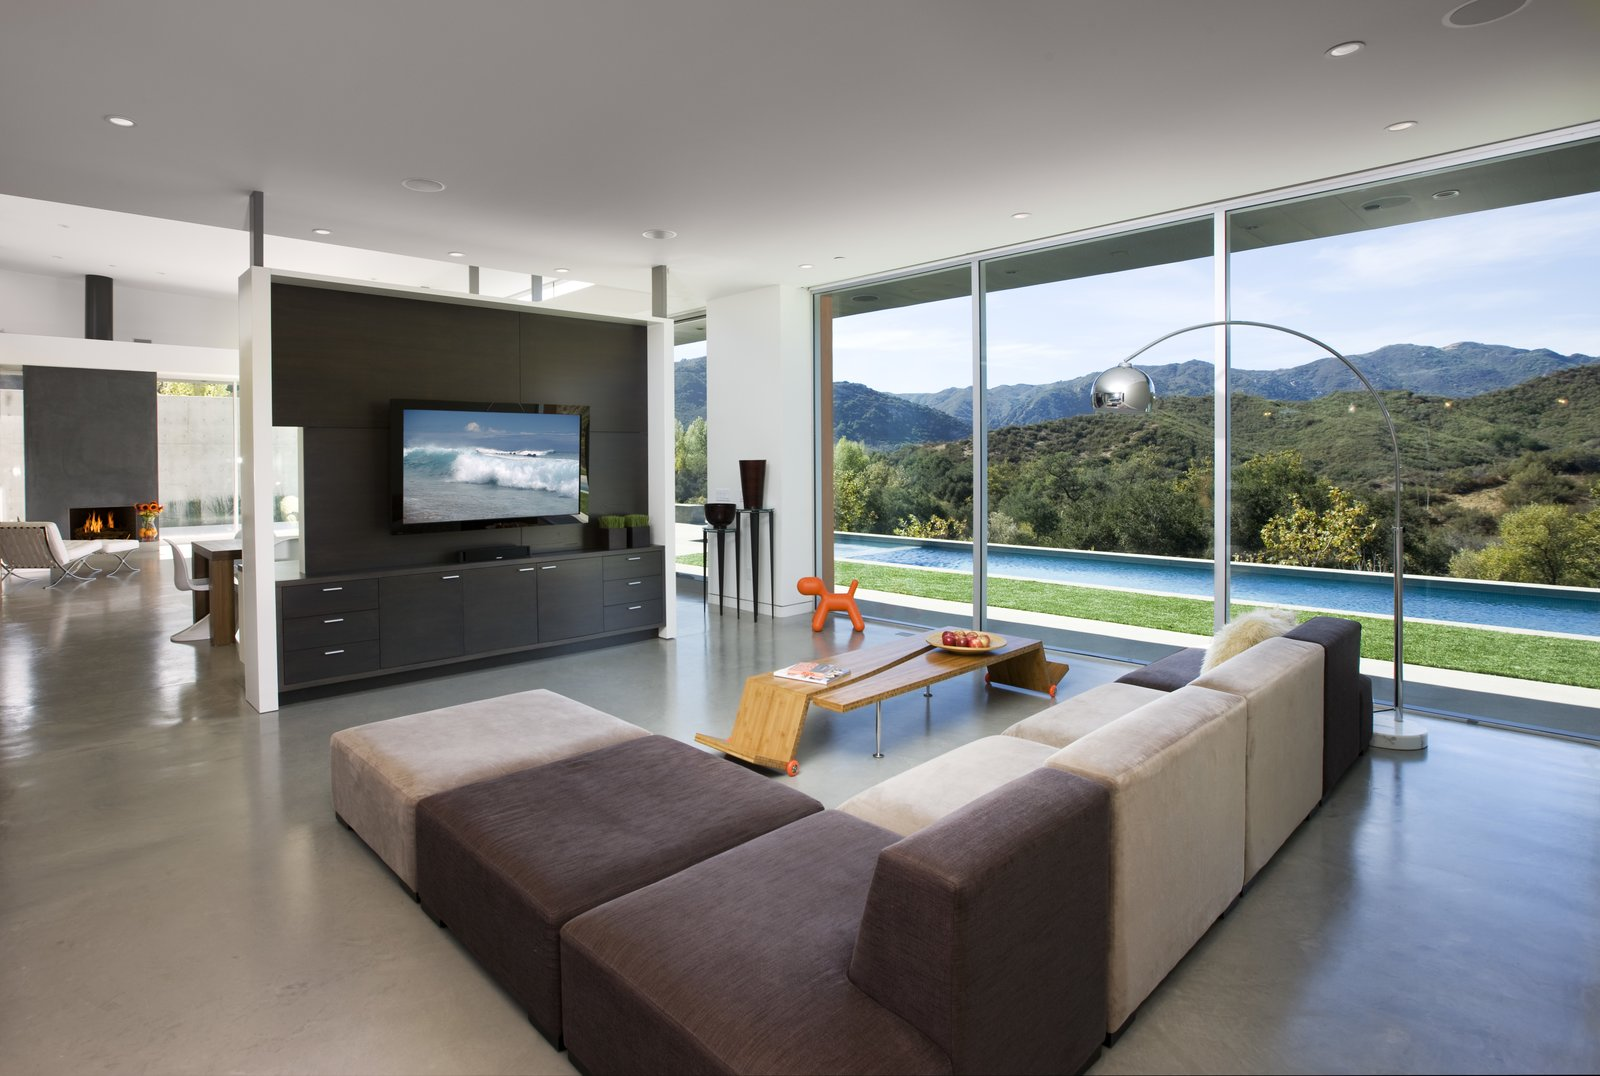 The open concept living room overlooks the pool outside and the mountains on the horizon. Interior walls never fully meet the ceiling, to keep a loft-like open floor plan.   Lima Residence by Abramson Teiger Architects